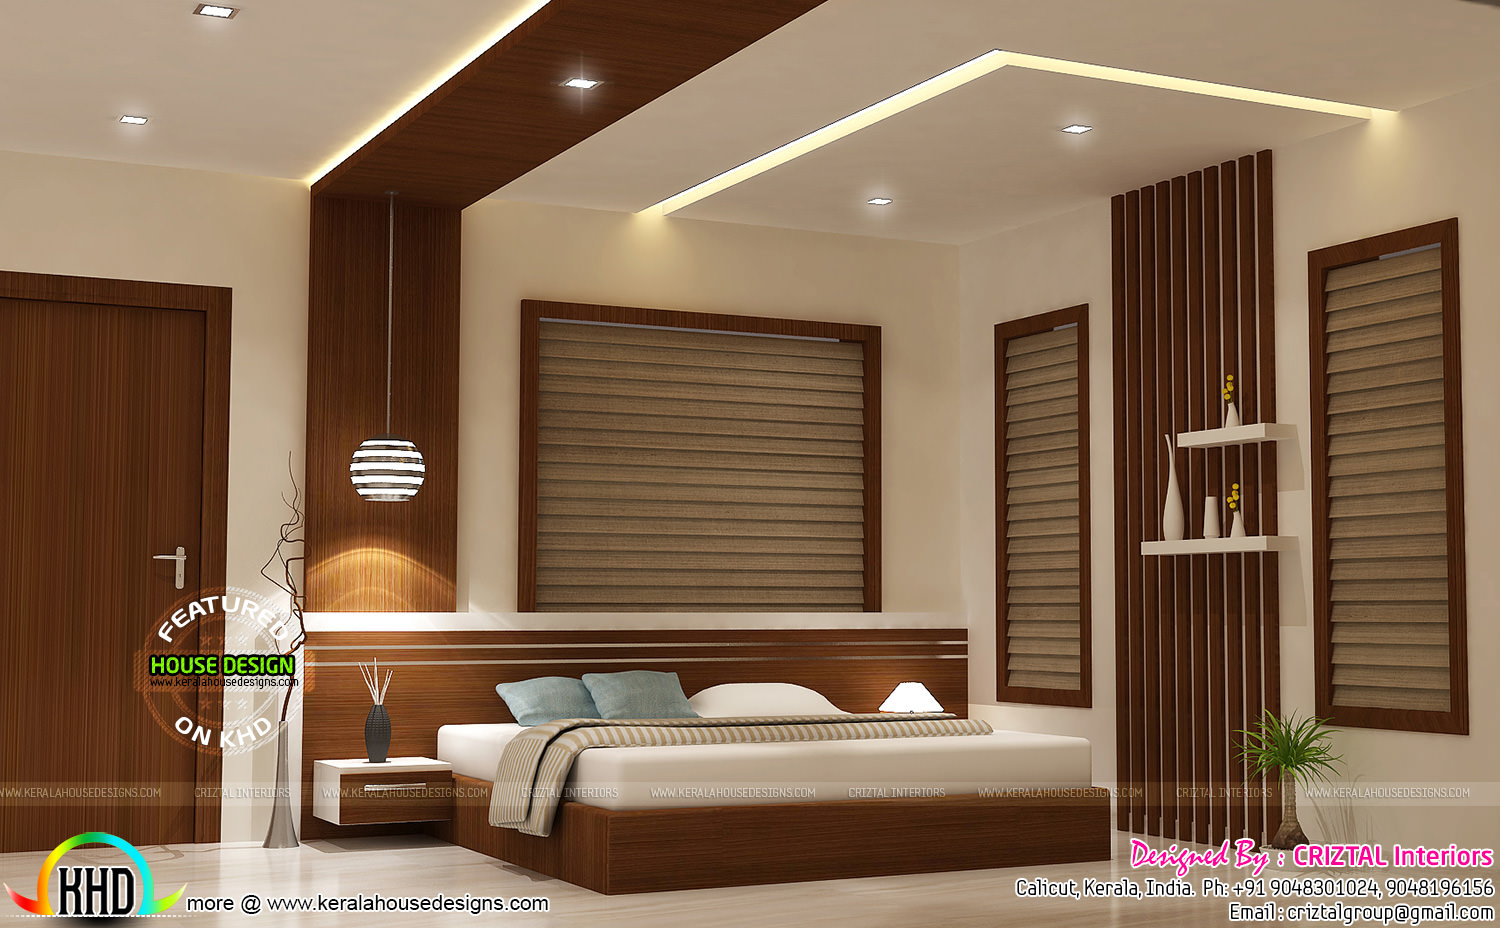 Interier Bedroom Bedroom Dining Hall And Living Interior Kerala Home